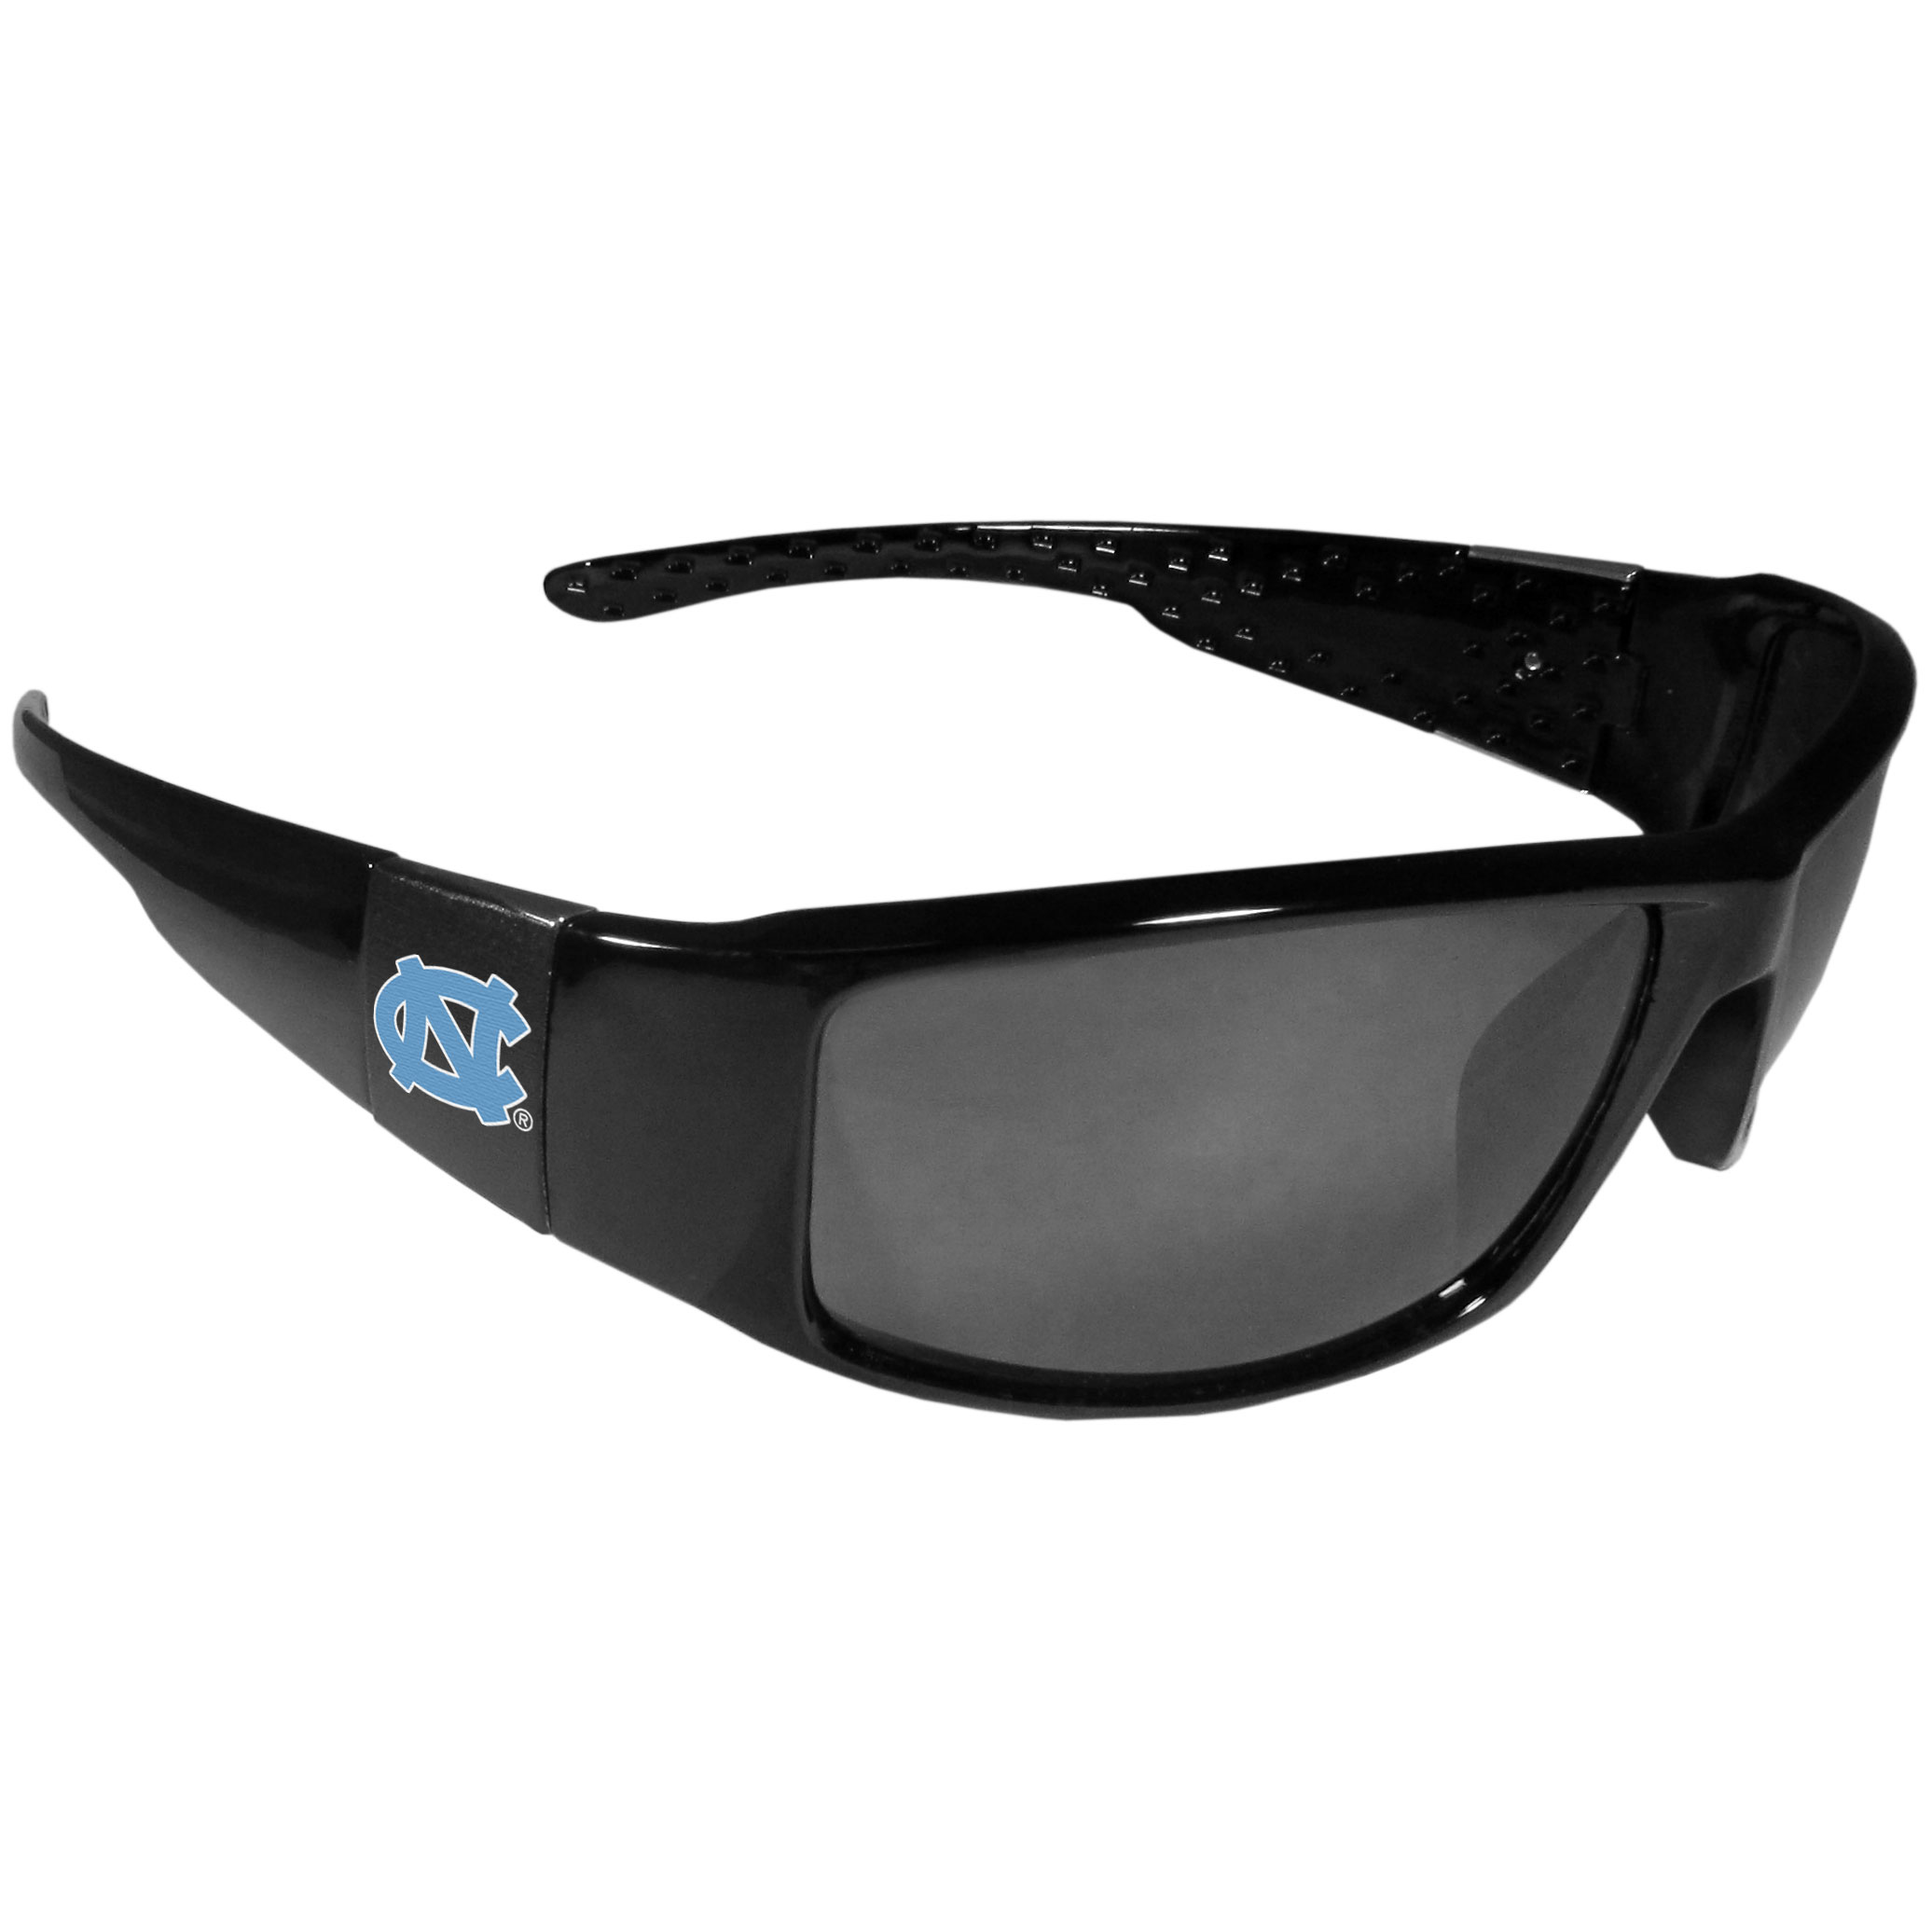 N. Carolina Tar Heels Black Wrap Sunglasses - These designer inspired frames have a sleek look in all black with  N. Carolina Tar Heels shields on each arm with a printed logo. The shades are perfect for any outdoor activity like; golfing, driving, hiking, fishing or cheering on the team at a tailgating event or at a home game day BBQ with a lens rating of 100% UVA/UVB for maximum UV protection. The high-quality frames are as durable as they are fashionable and with their classic look they are the perfect fan accessory that can be worn everyday for every occasion.